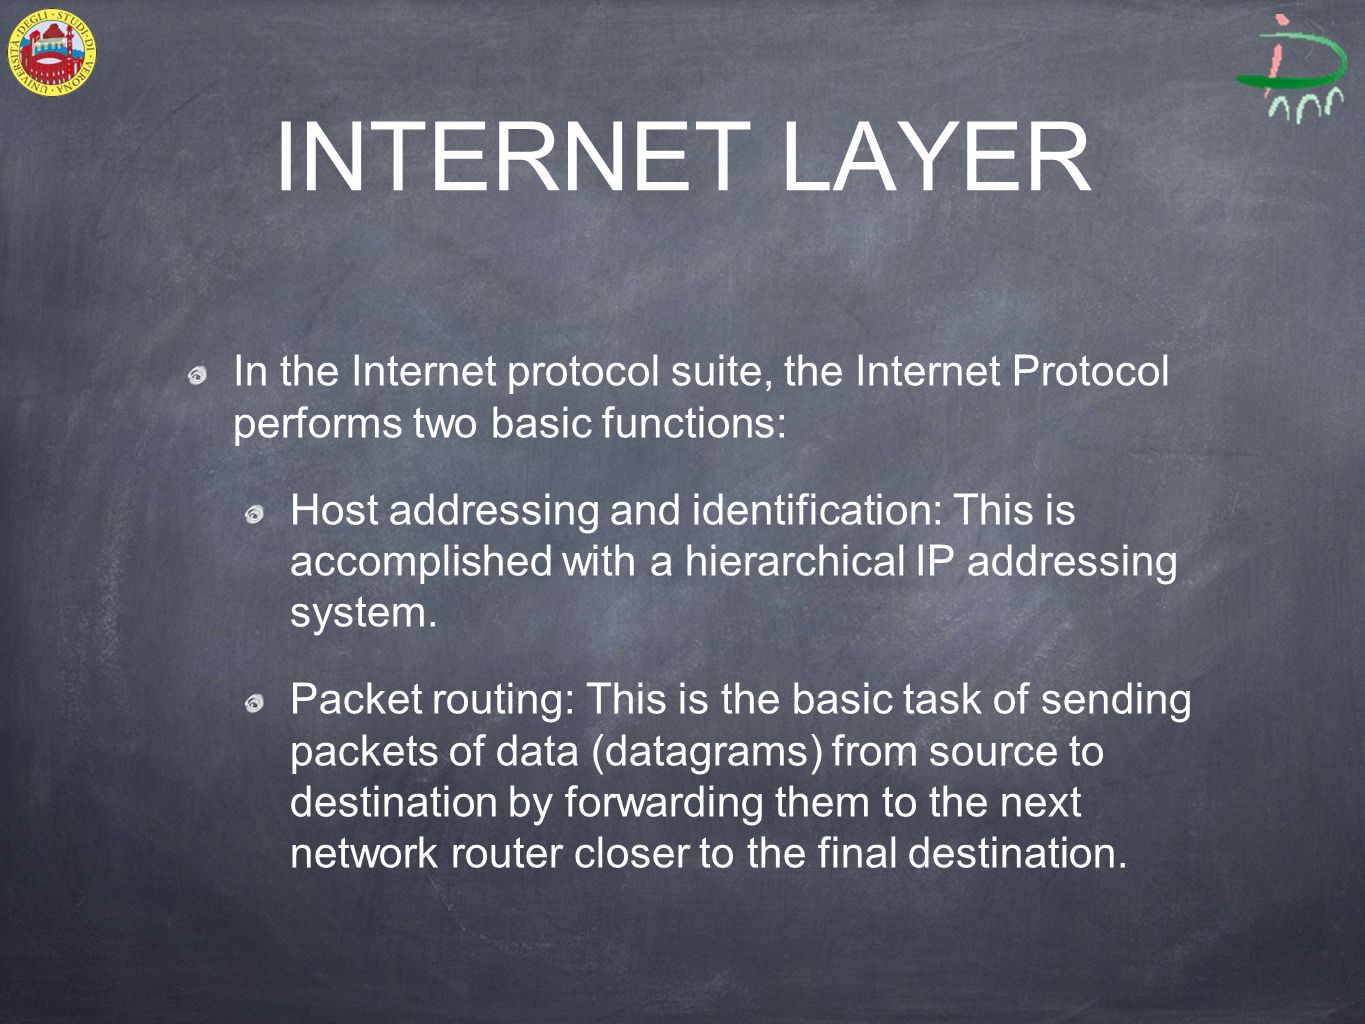 INTERNET LAYER In the Internet protocol suite, the Internet Protocol performs two basic functions: Host addressing and identification: This is accomplished with a hierarchical IP addressing system.